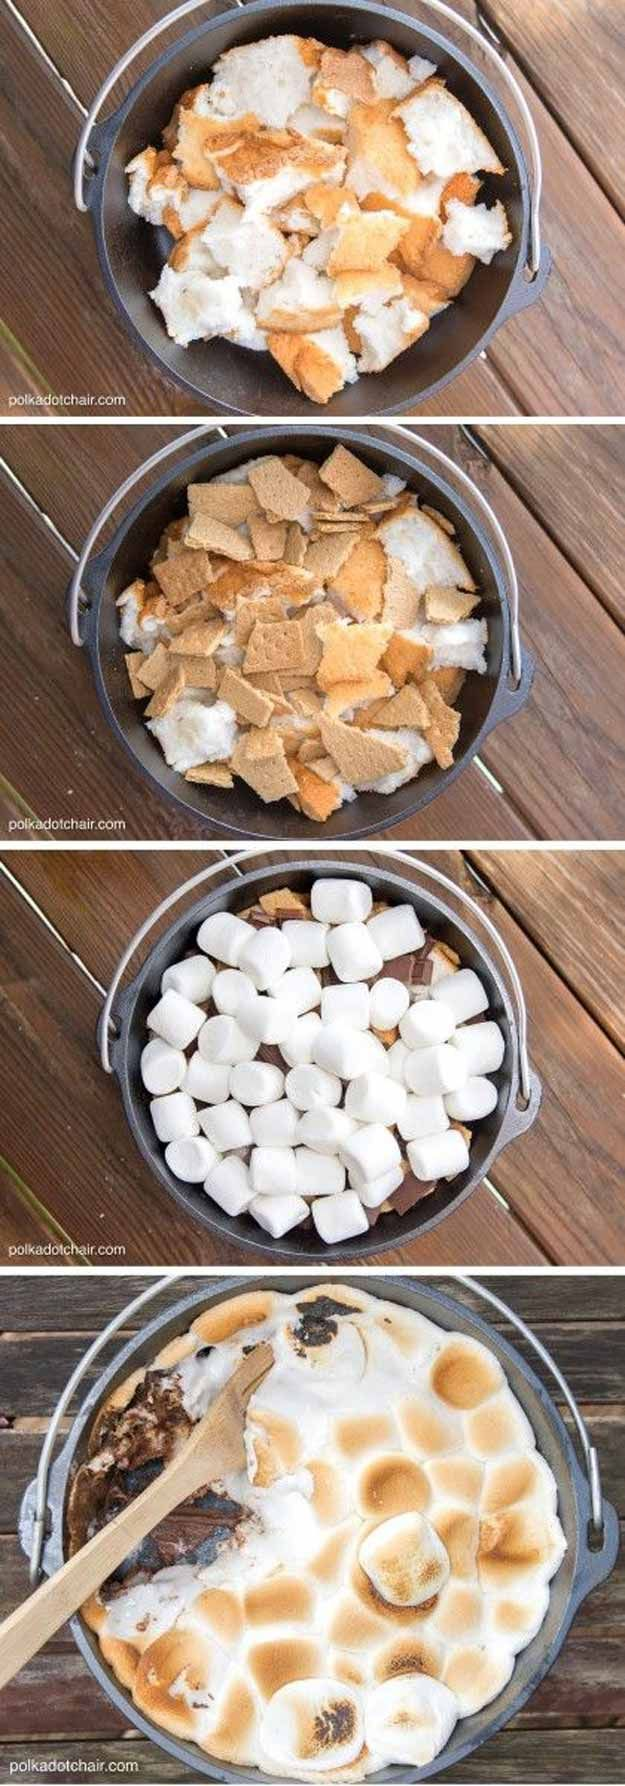 Smores Pie Recipe for camping and cooking outdoors | You'll lovee these 13 Dutch Oven Recipes For Cooking Outdoors